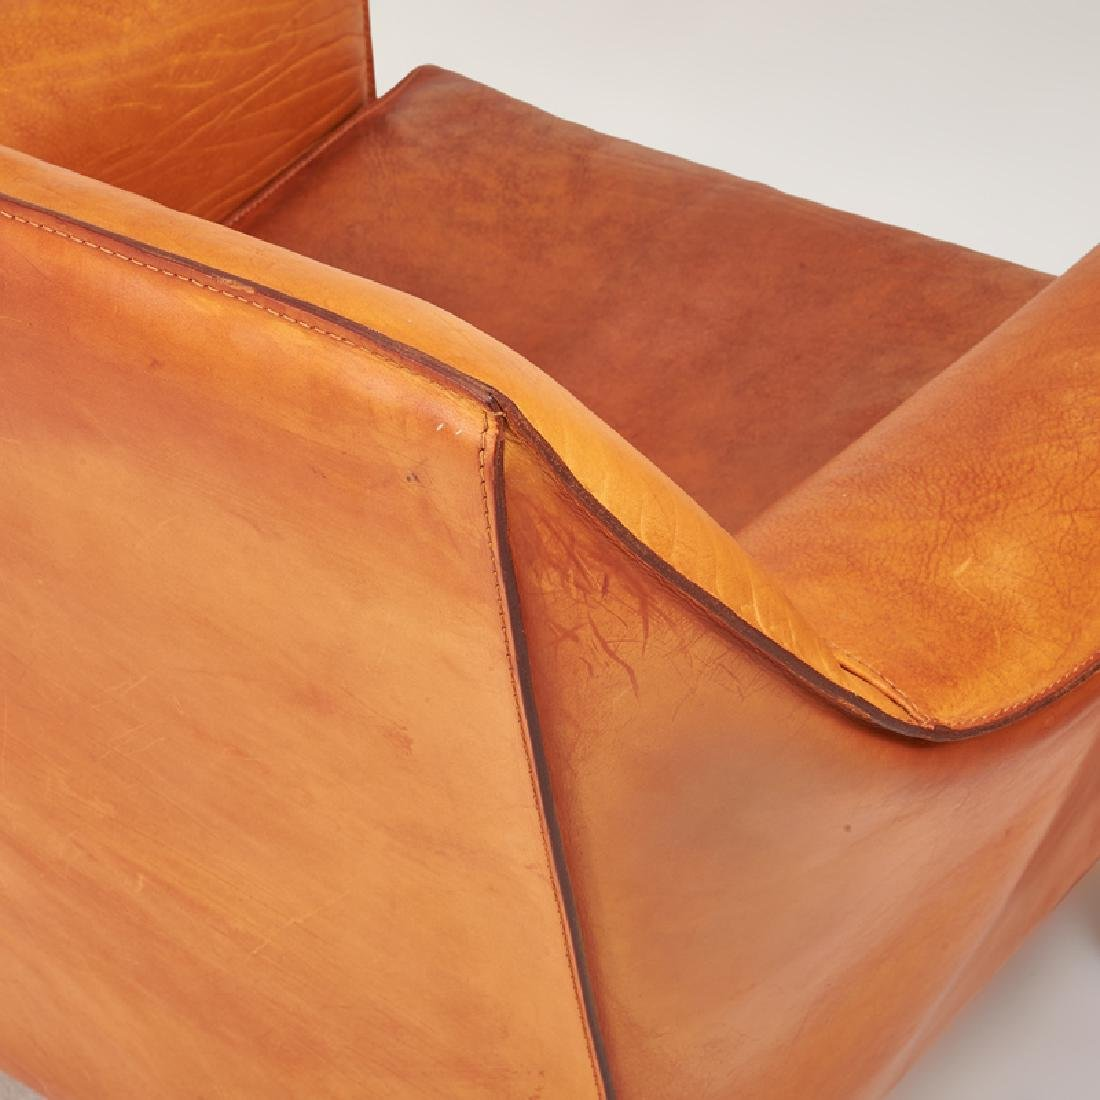 MARIO BELLINI Cab love seat, pr. of lounge chairs - 4